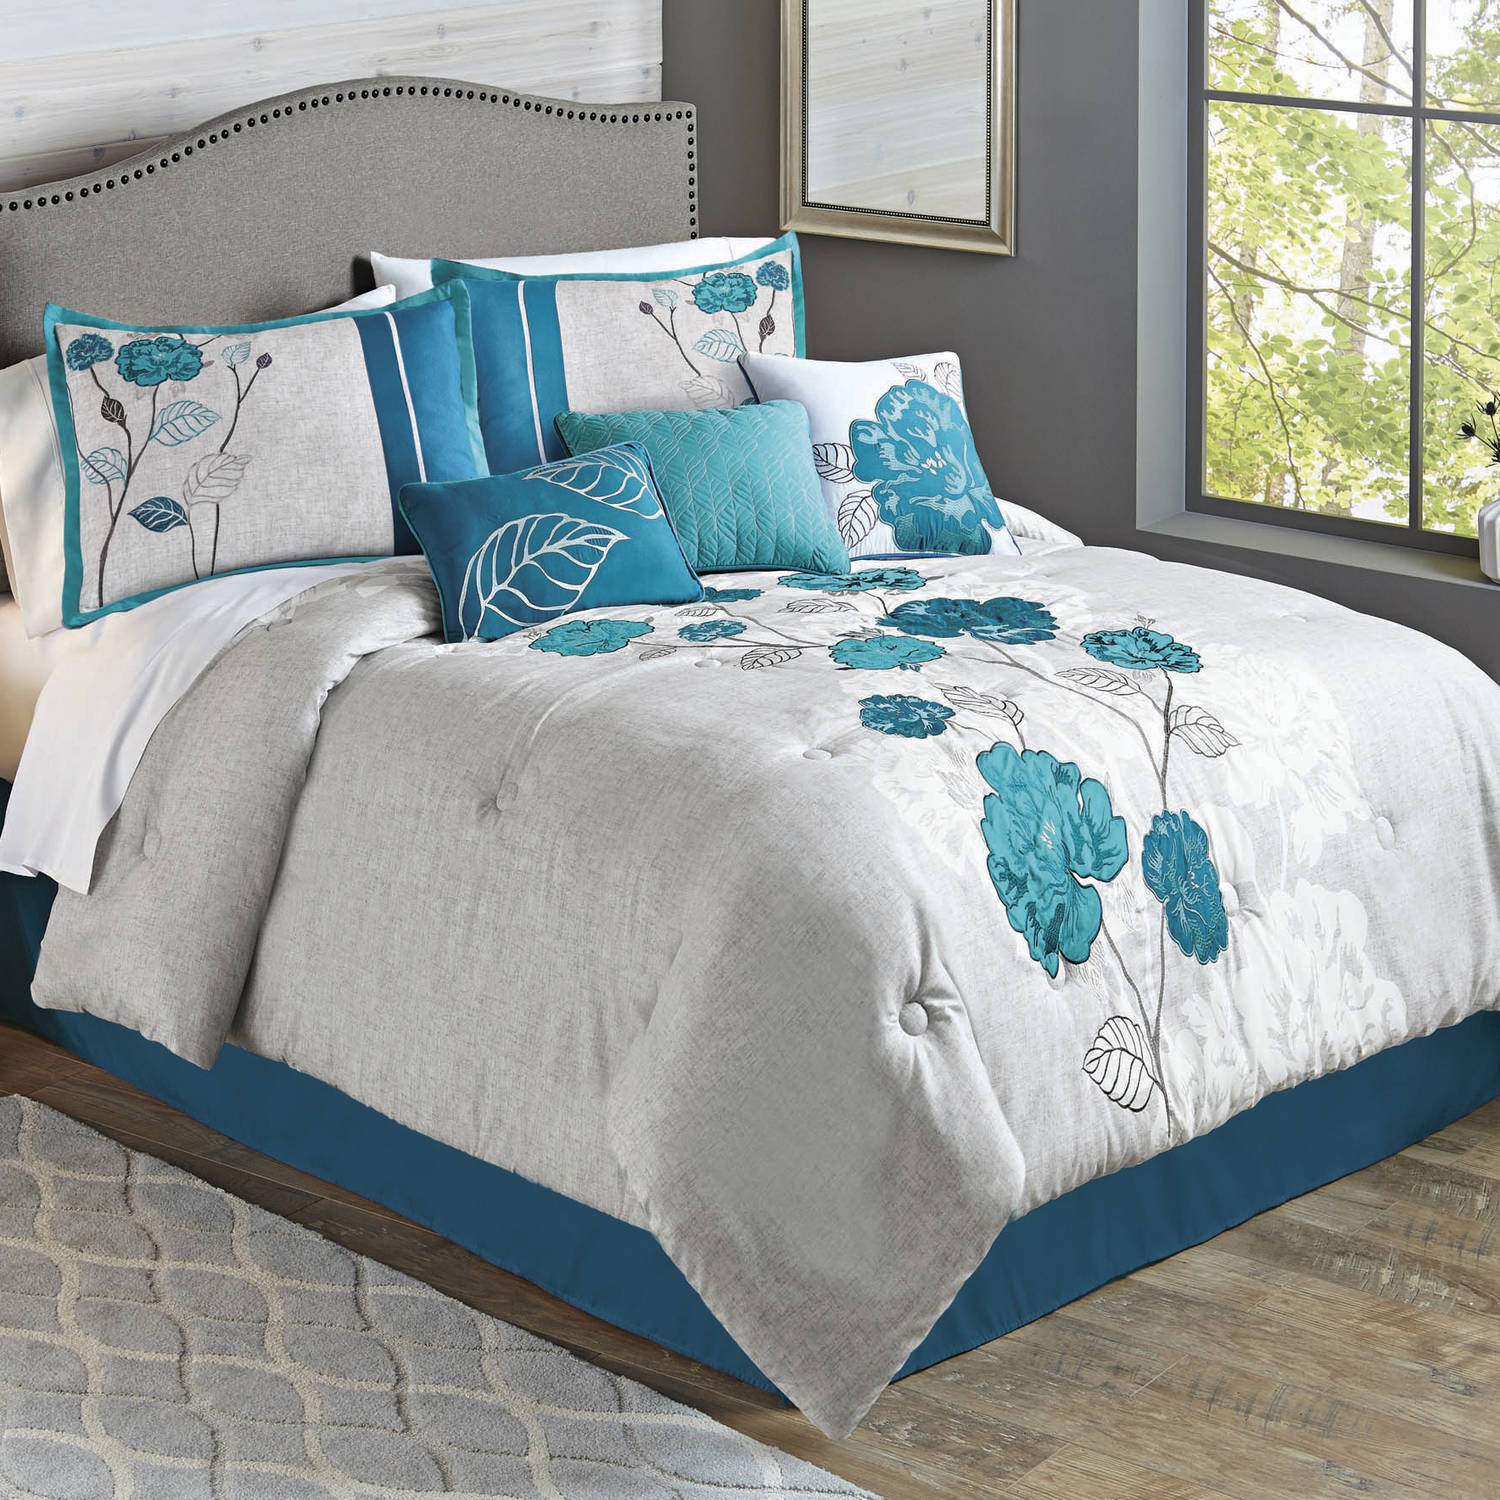 quilted rafael set sets chic bag comforter pueblo embroidered products in block nolan piece teal octagon color donatello a home bed pattern hudson jared